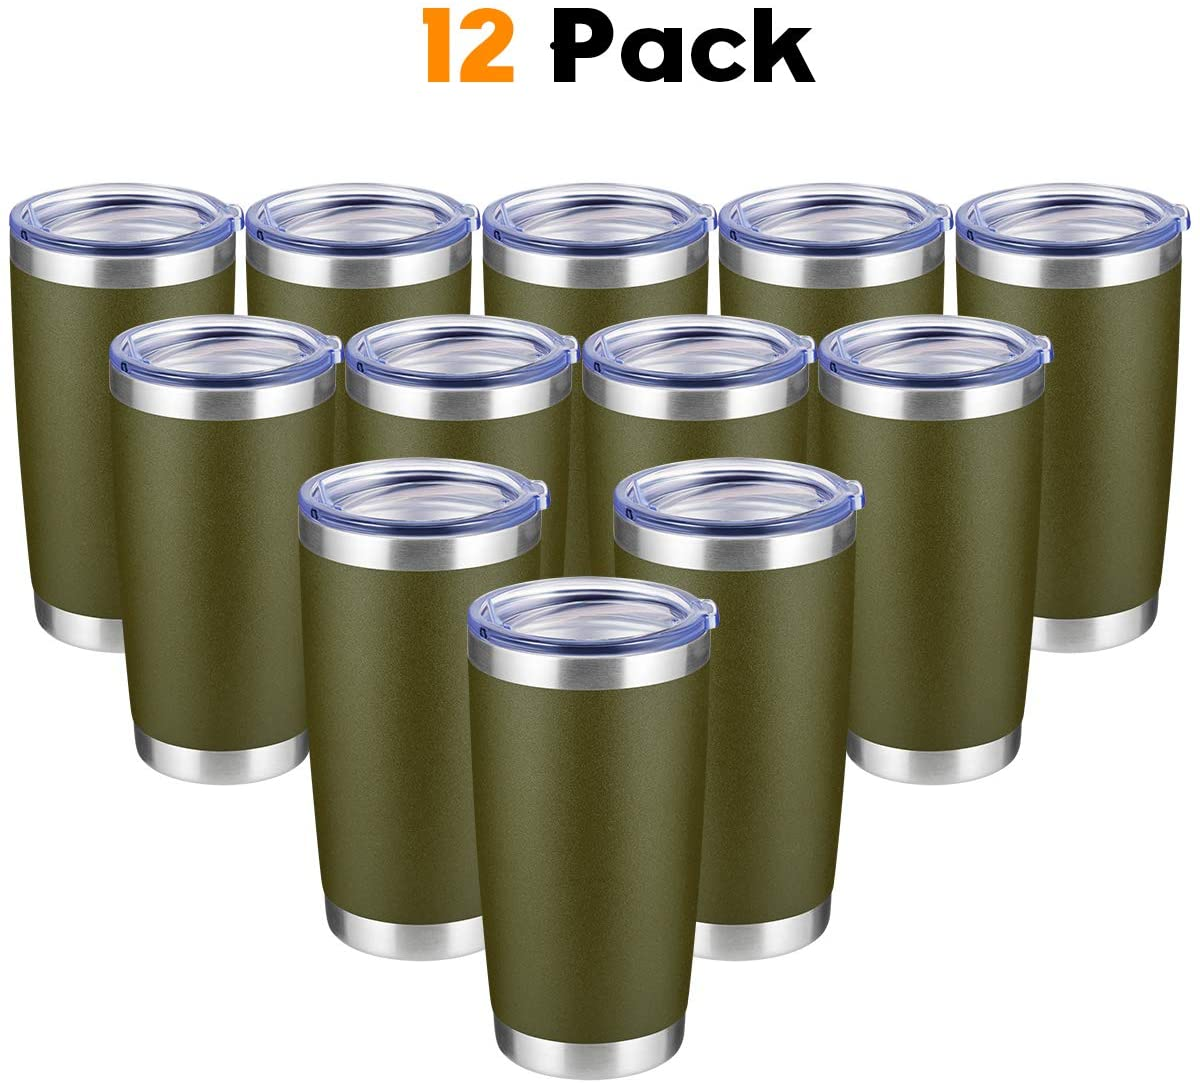 COKTIK 20oz Tumbler 12 Pack Double Wall Vacuum Insulated Travel Mug Bulk, Stainless Steel Tumblers with Lid and Straw, Durable Powder Coated Coffee Cups for Cold & Hot Drinks